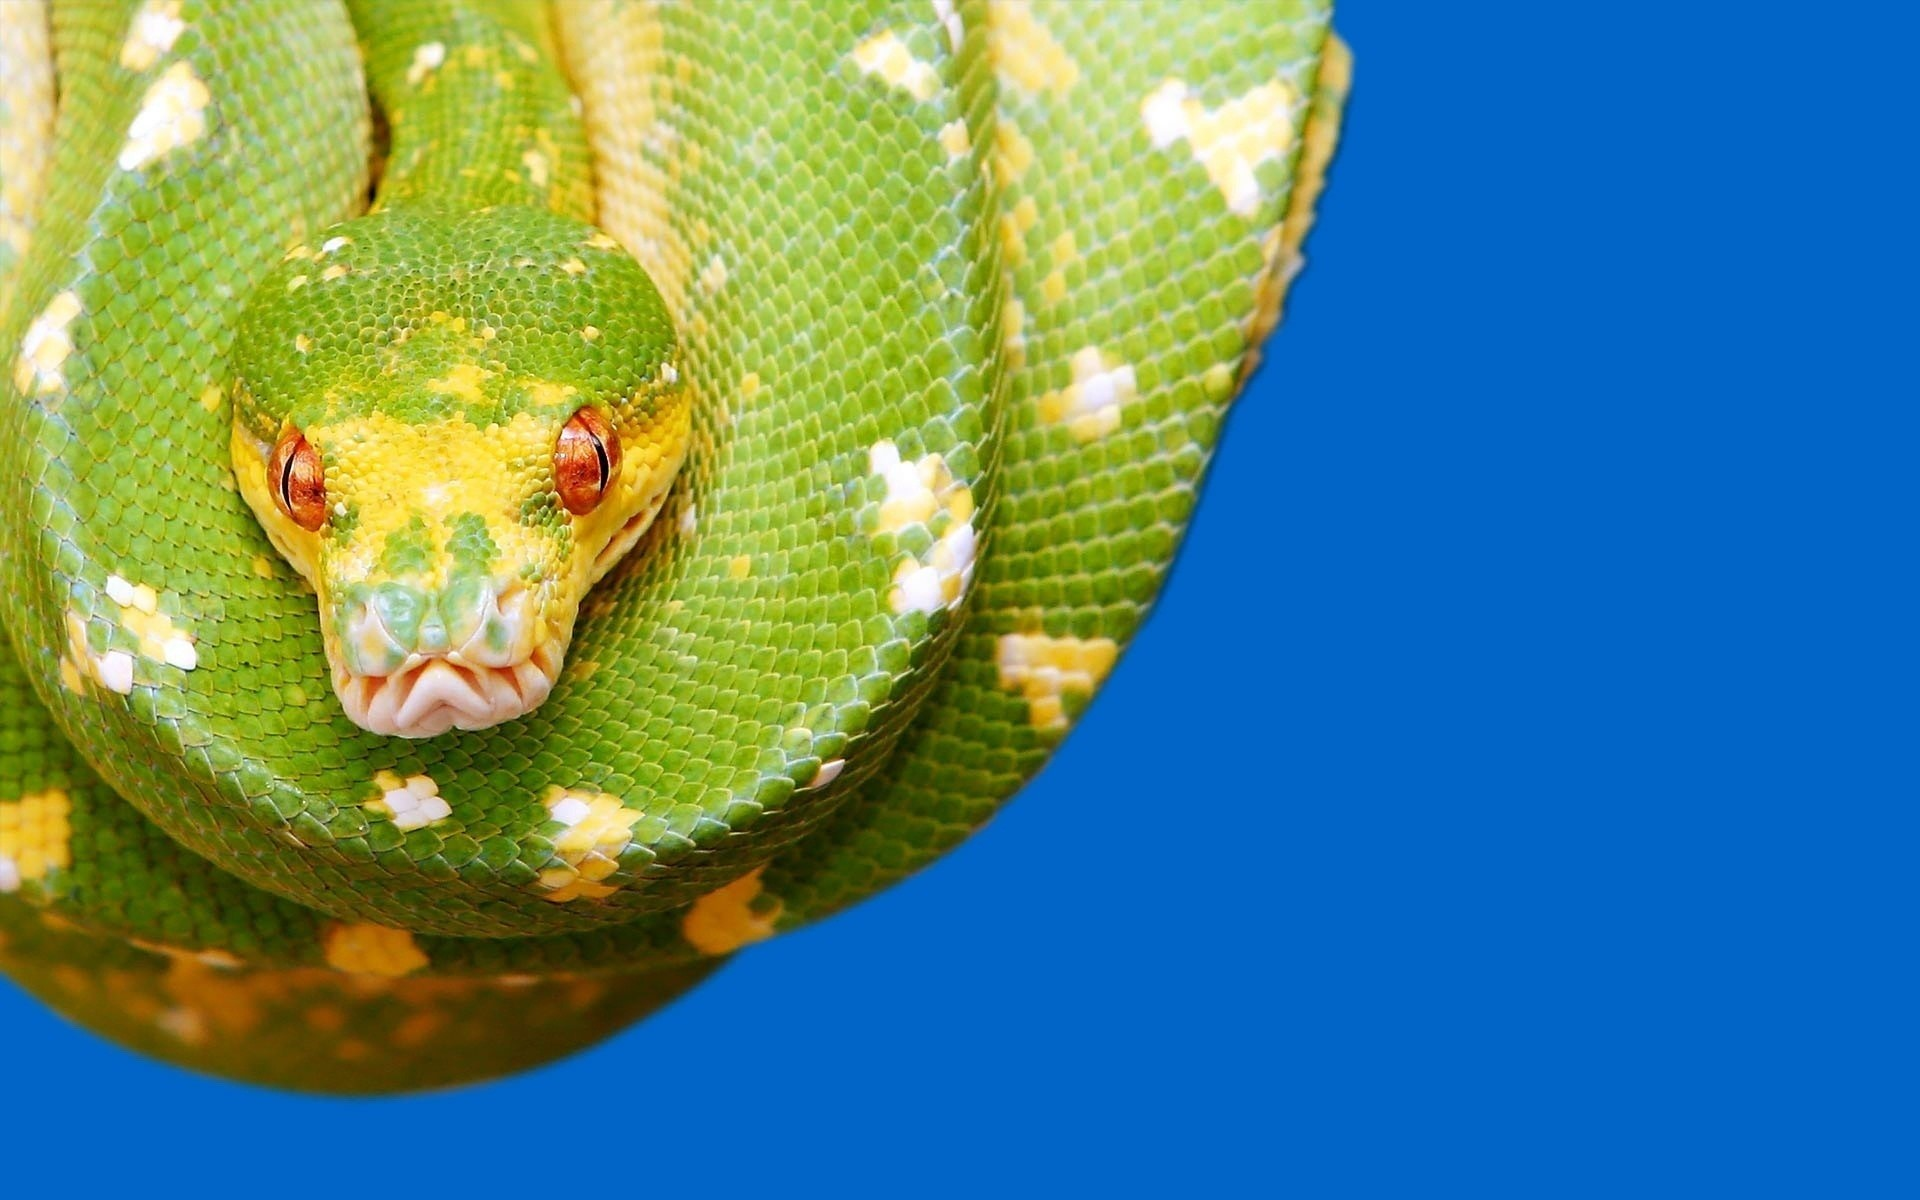 1920x1200 Desktop Hd Python Snake Wallpapers Desktop Hd Python Snake Wallpapers